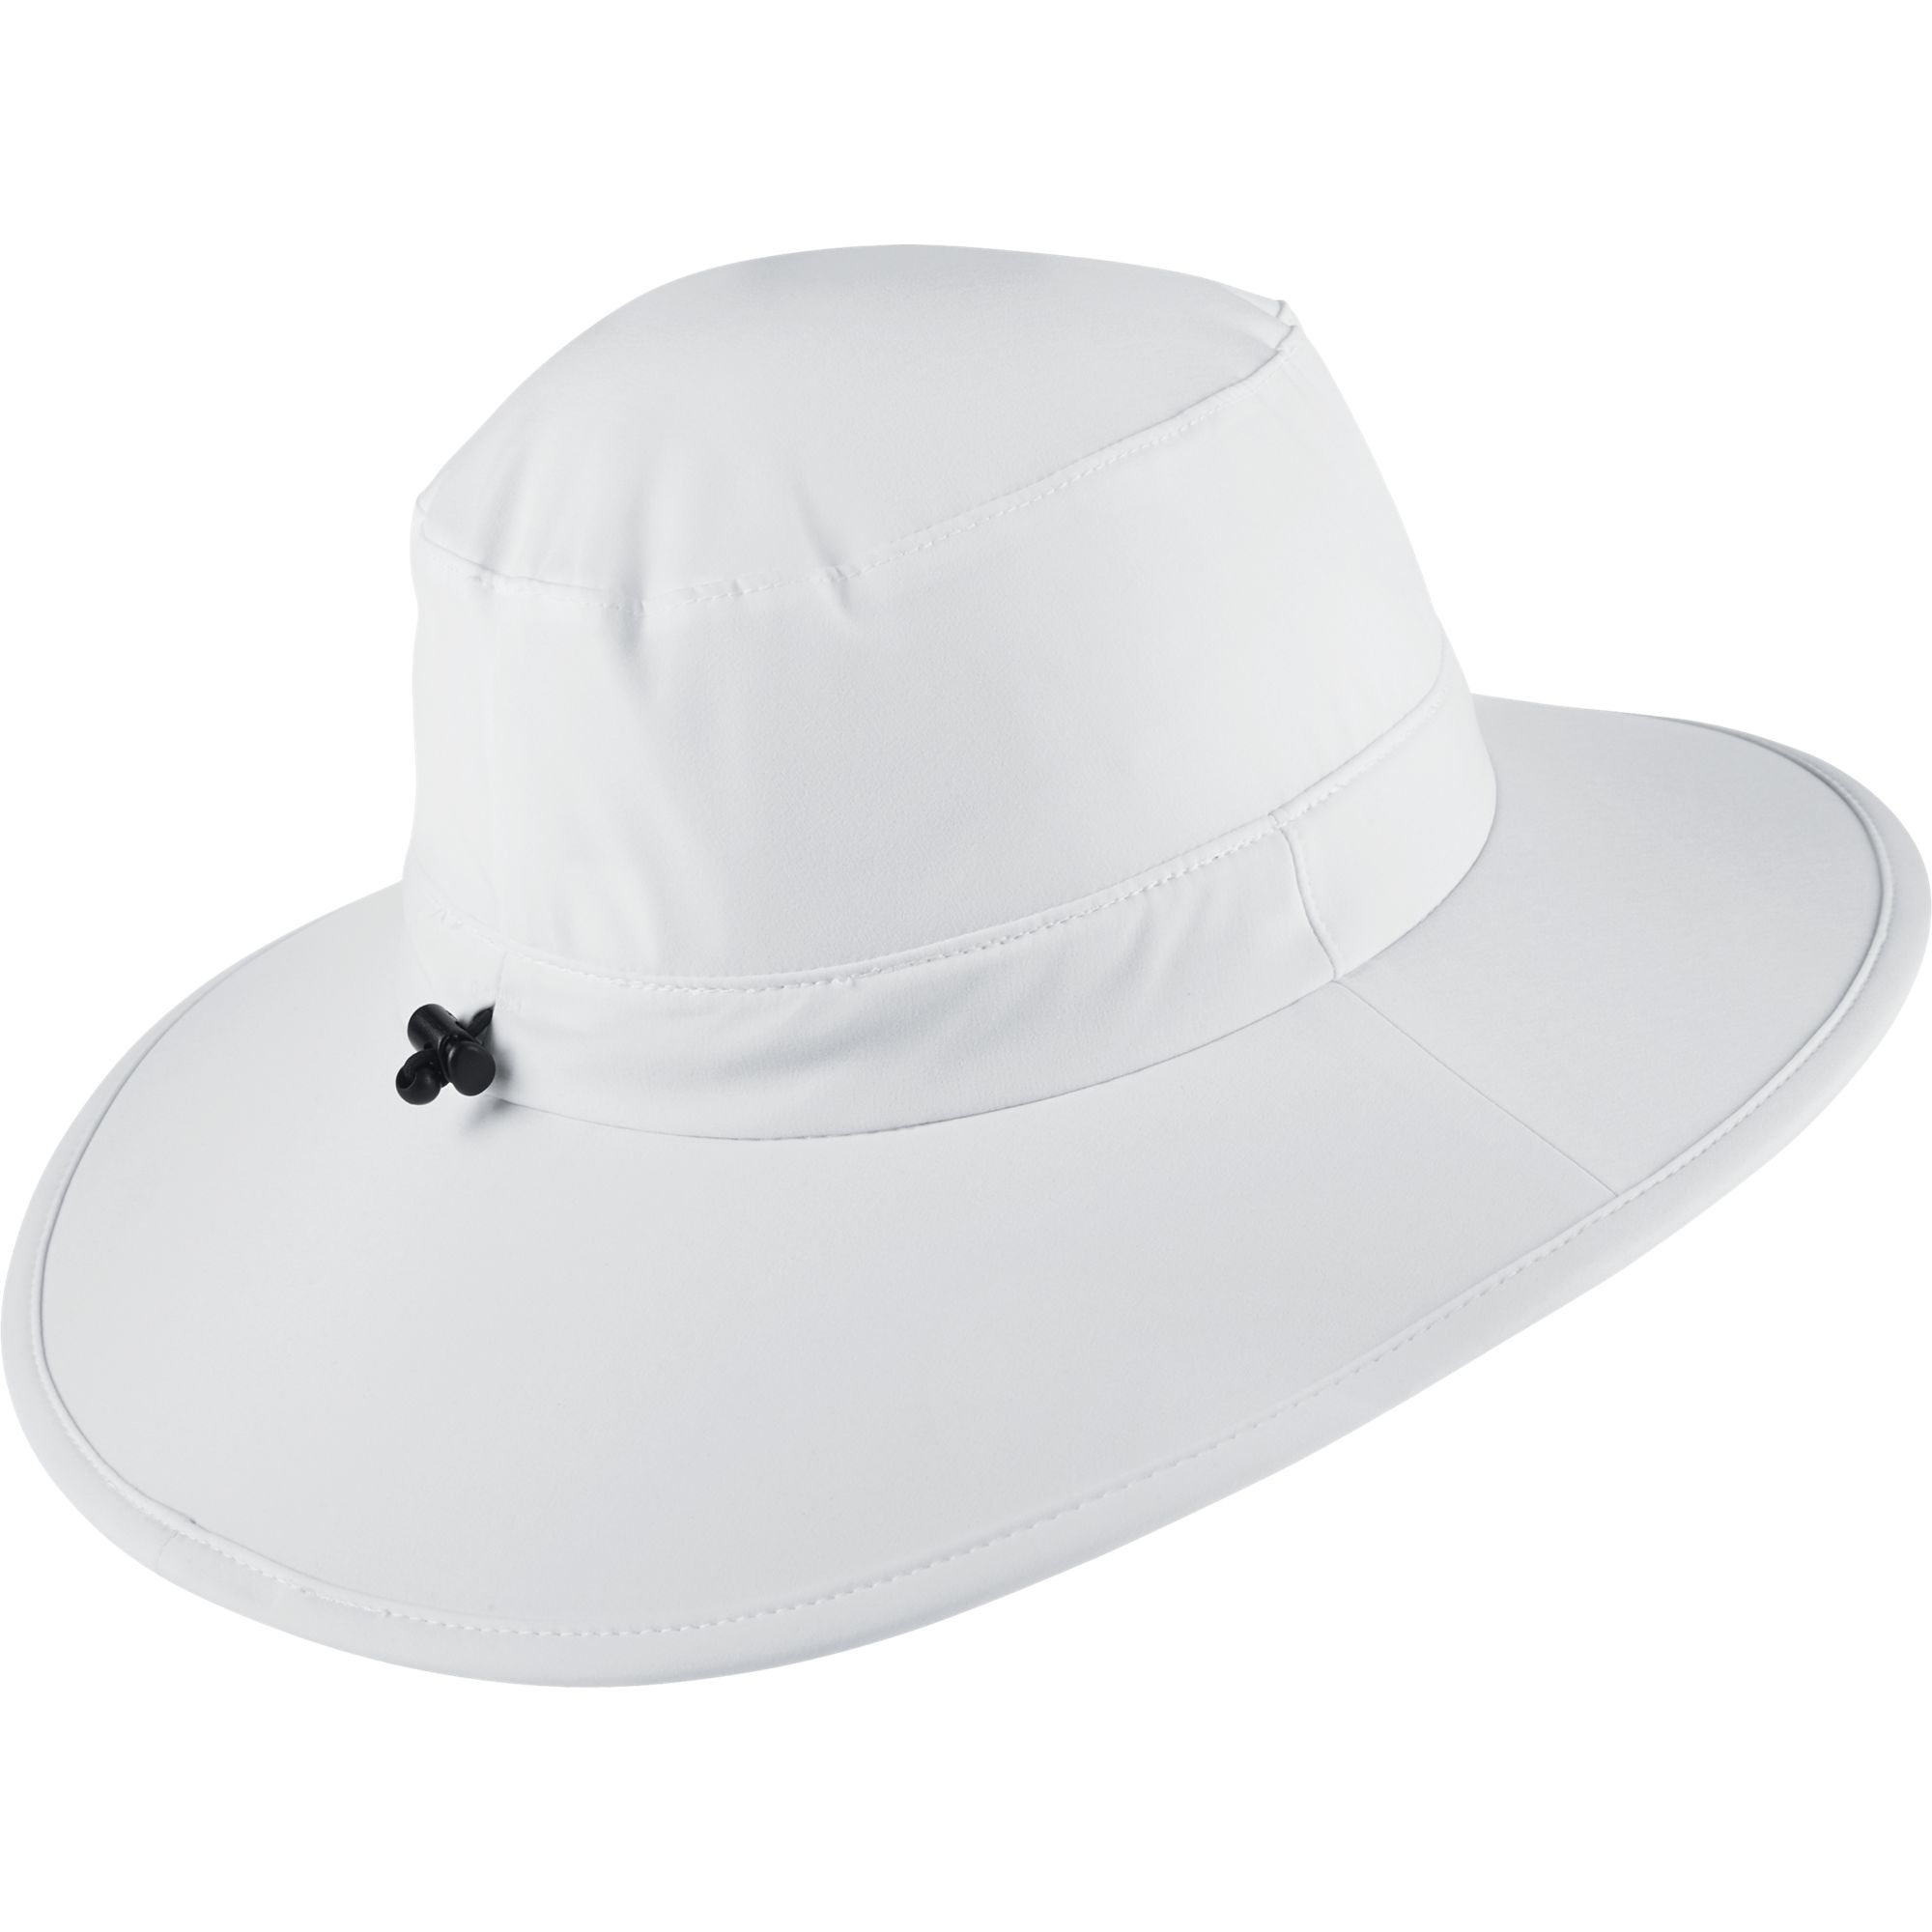 New 2015 NIKE Golf Sun Bucket Hat COLOR: White SIZE: Small ...